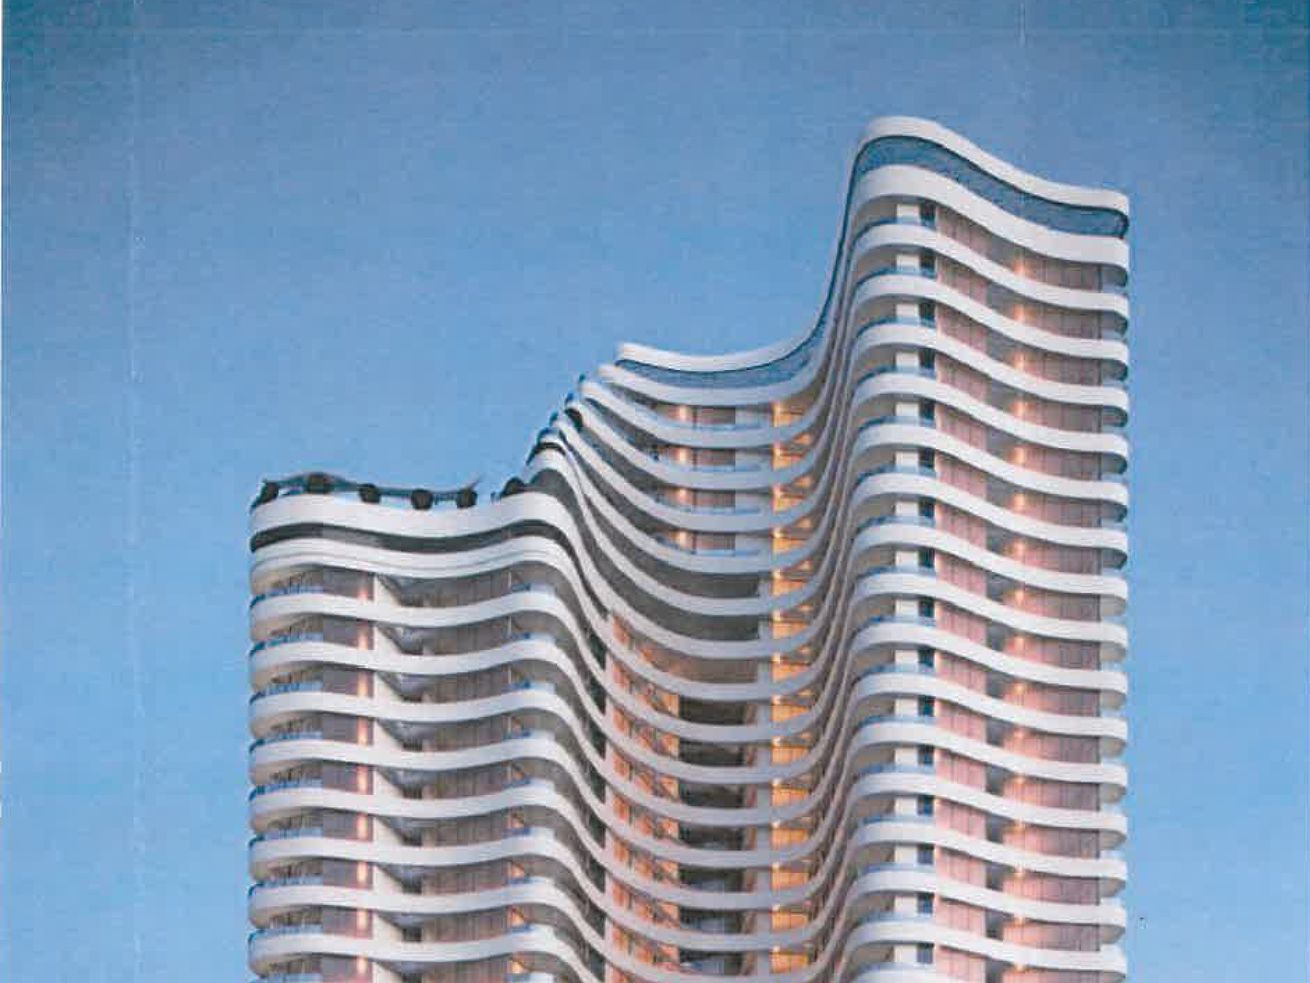 A rendering of the high-rise.